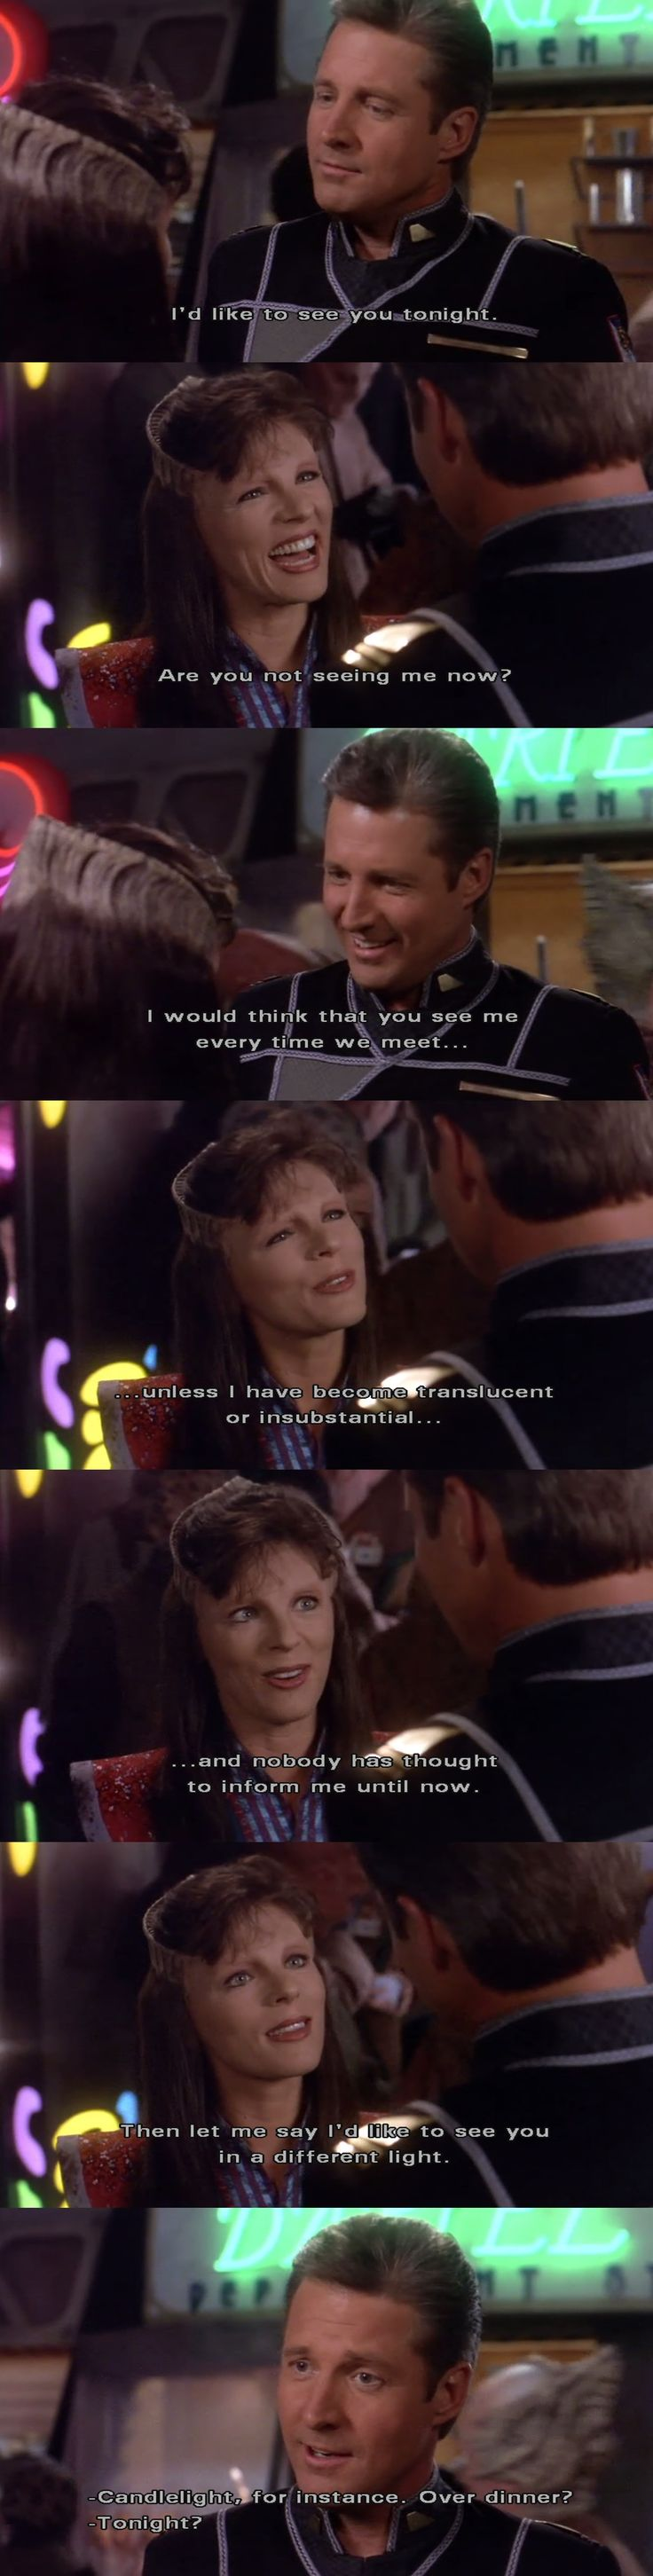 one of my favorite Delenn/Sheridan moments. Babylon 5 rewatch 3x12 - interspecies flirting is so cute :)